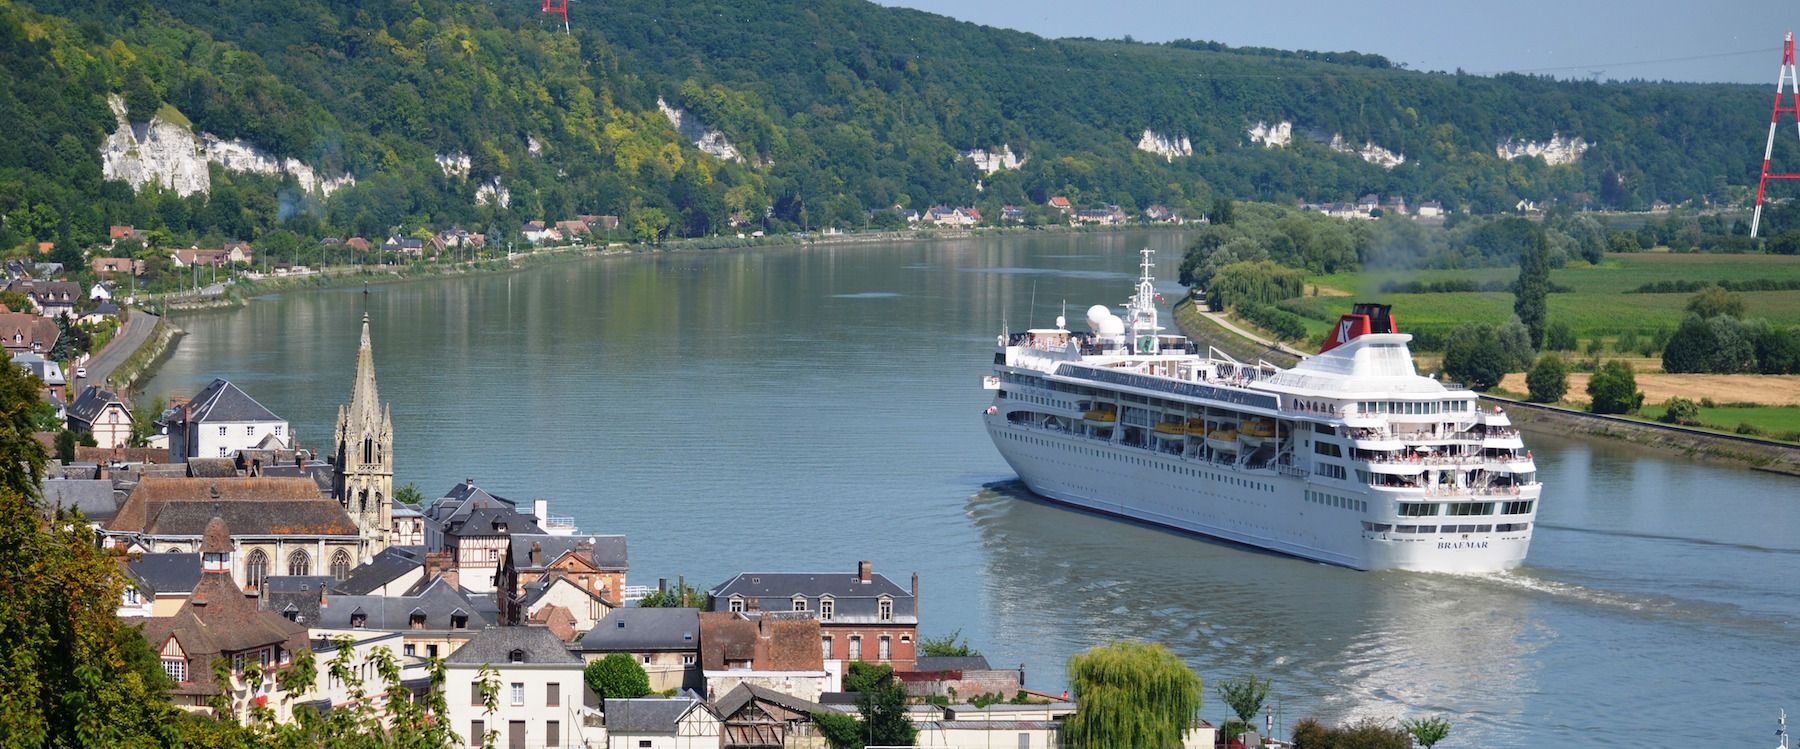 Fred Olsen's Balmoral departing Rouen, France